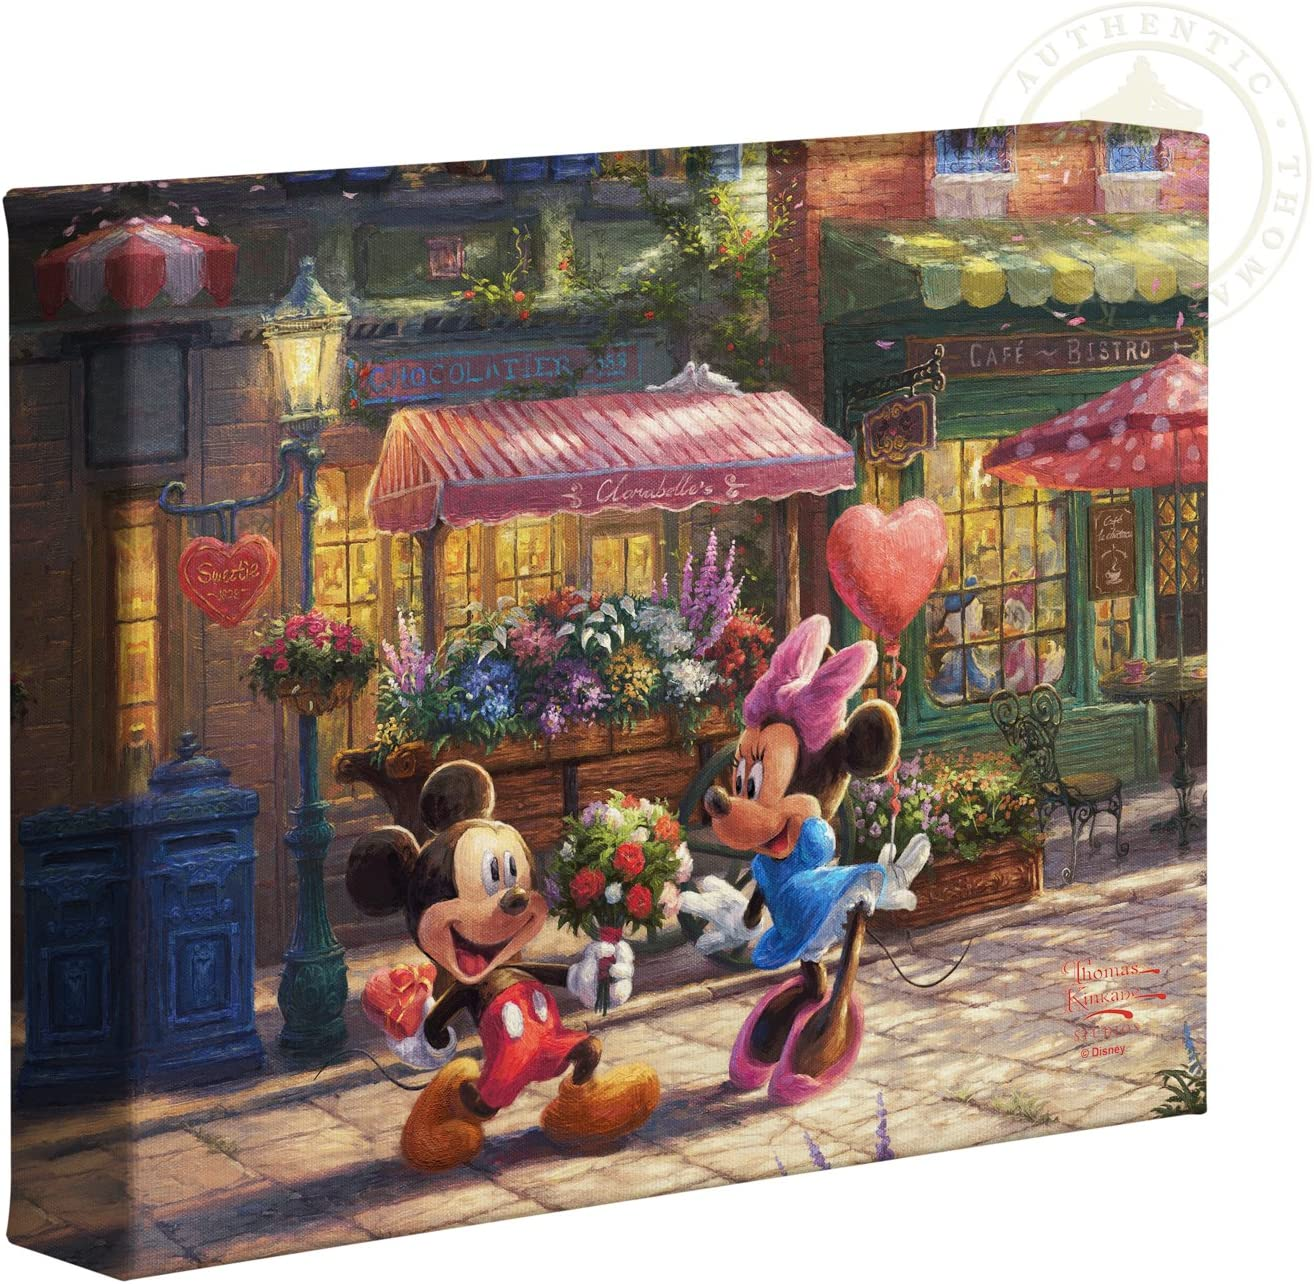 Thomas Kinkade Studios Mickey and Minnie Sweetheart Cafe 8 x 10 Gallery Wrapped Canvas